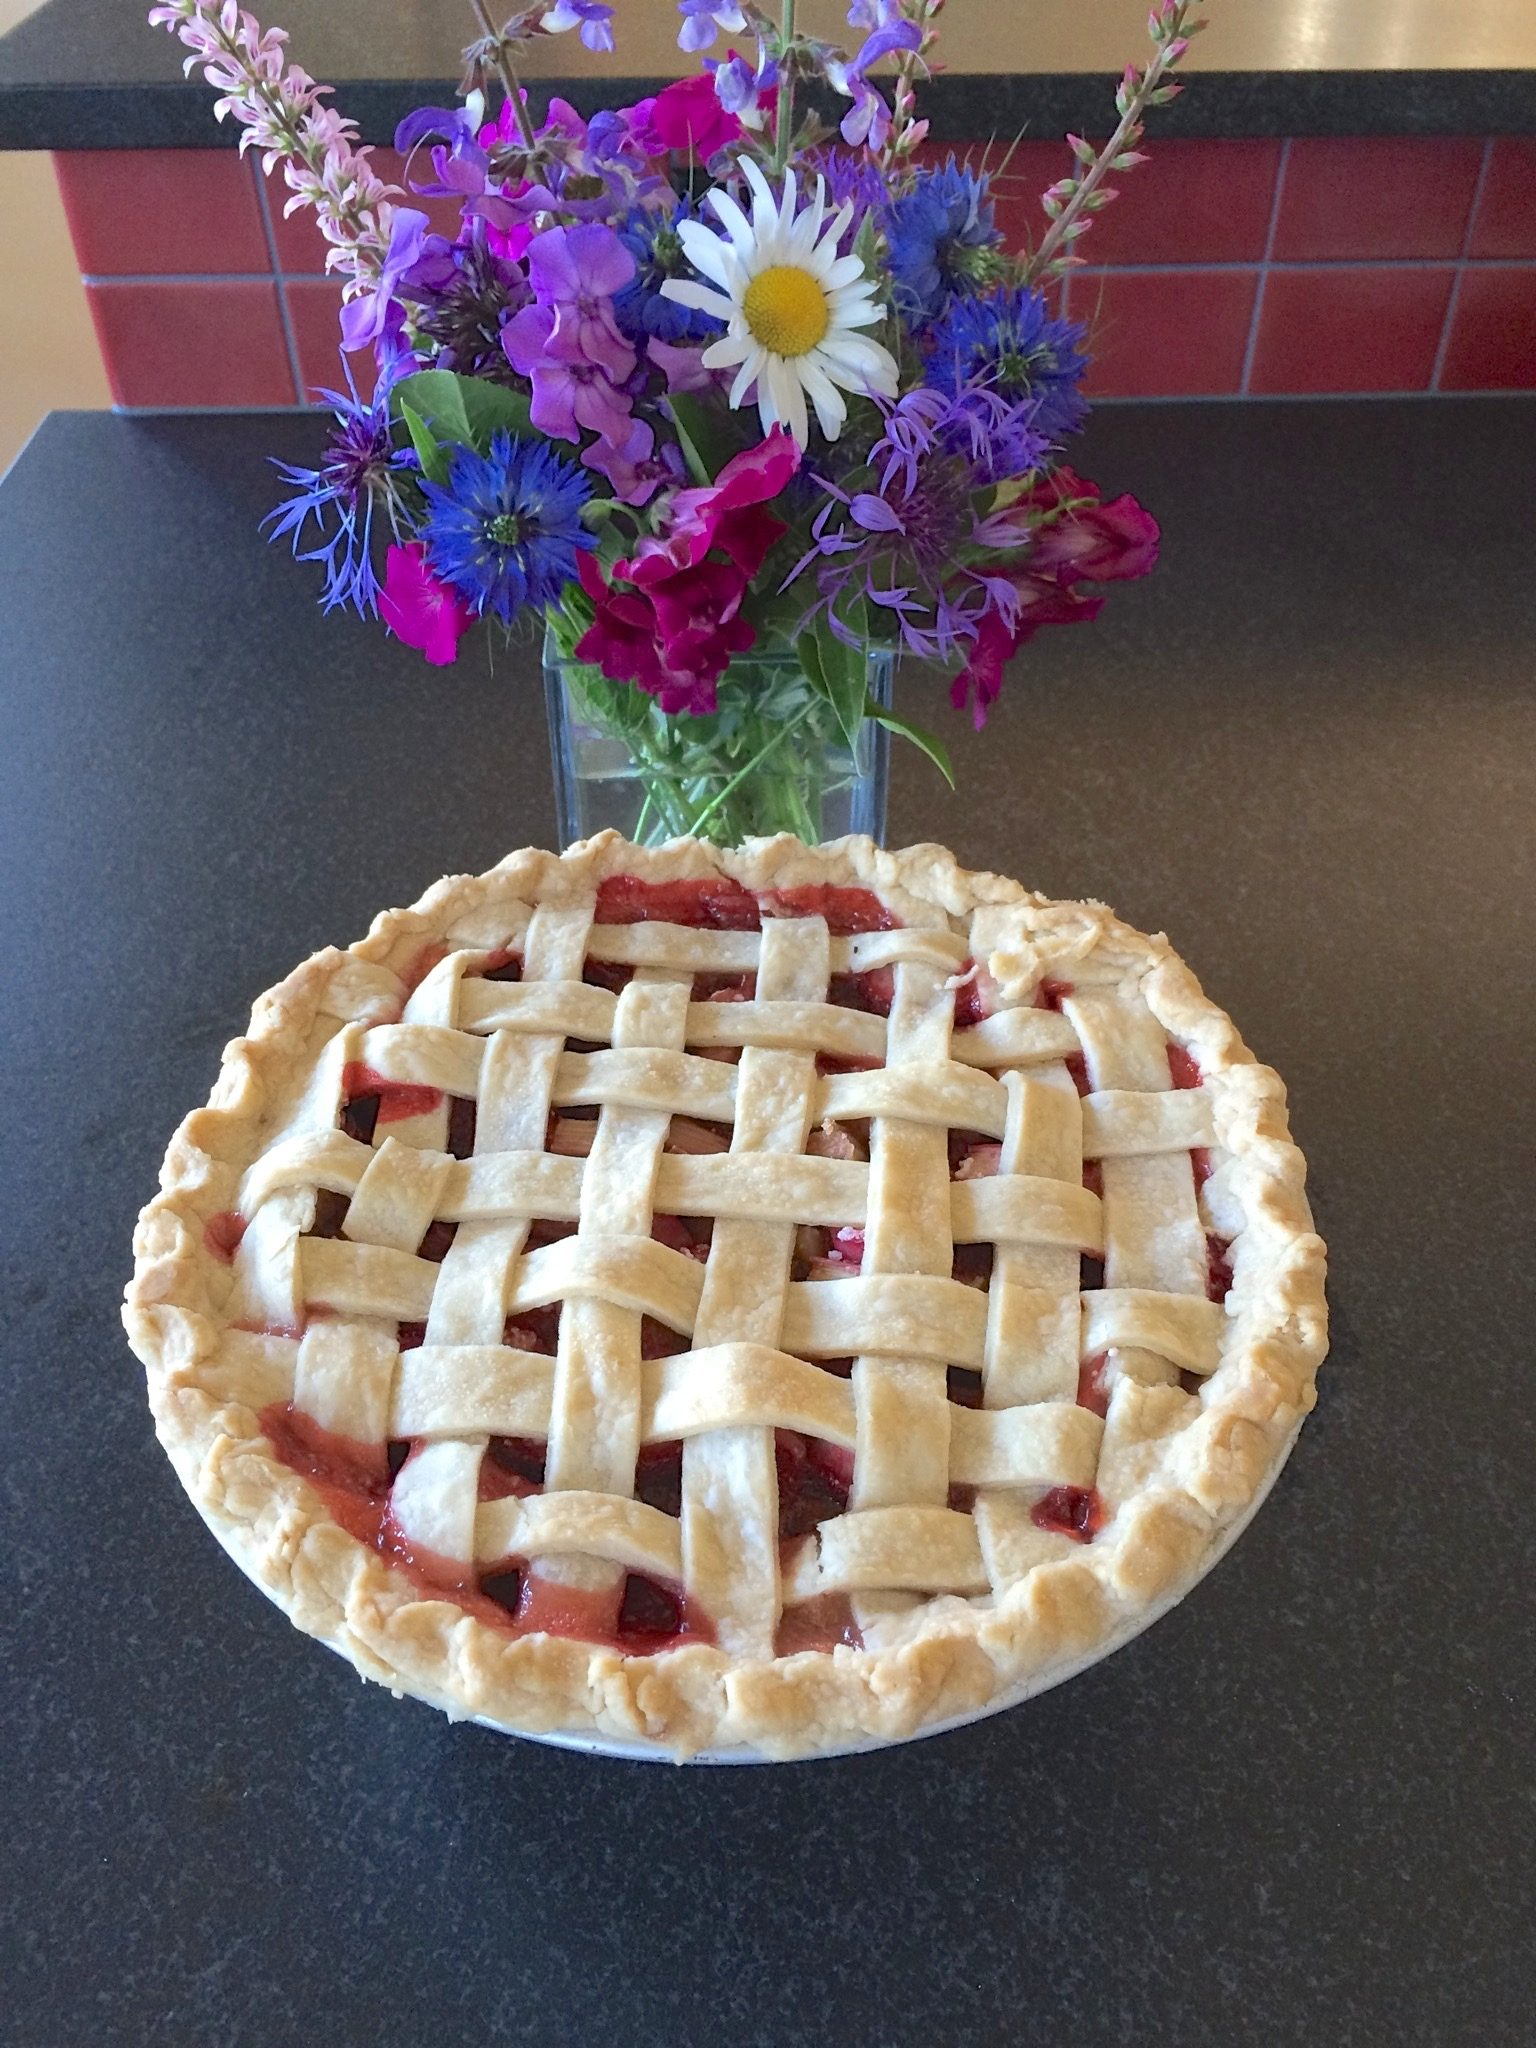 pie-and-flowers